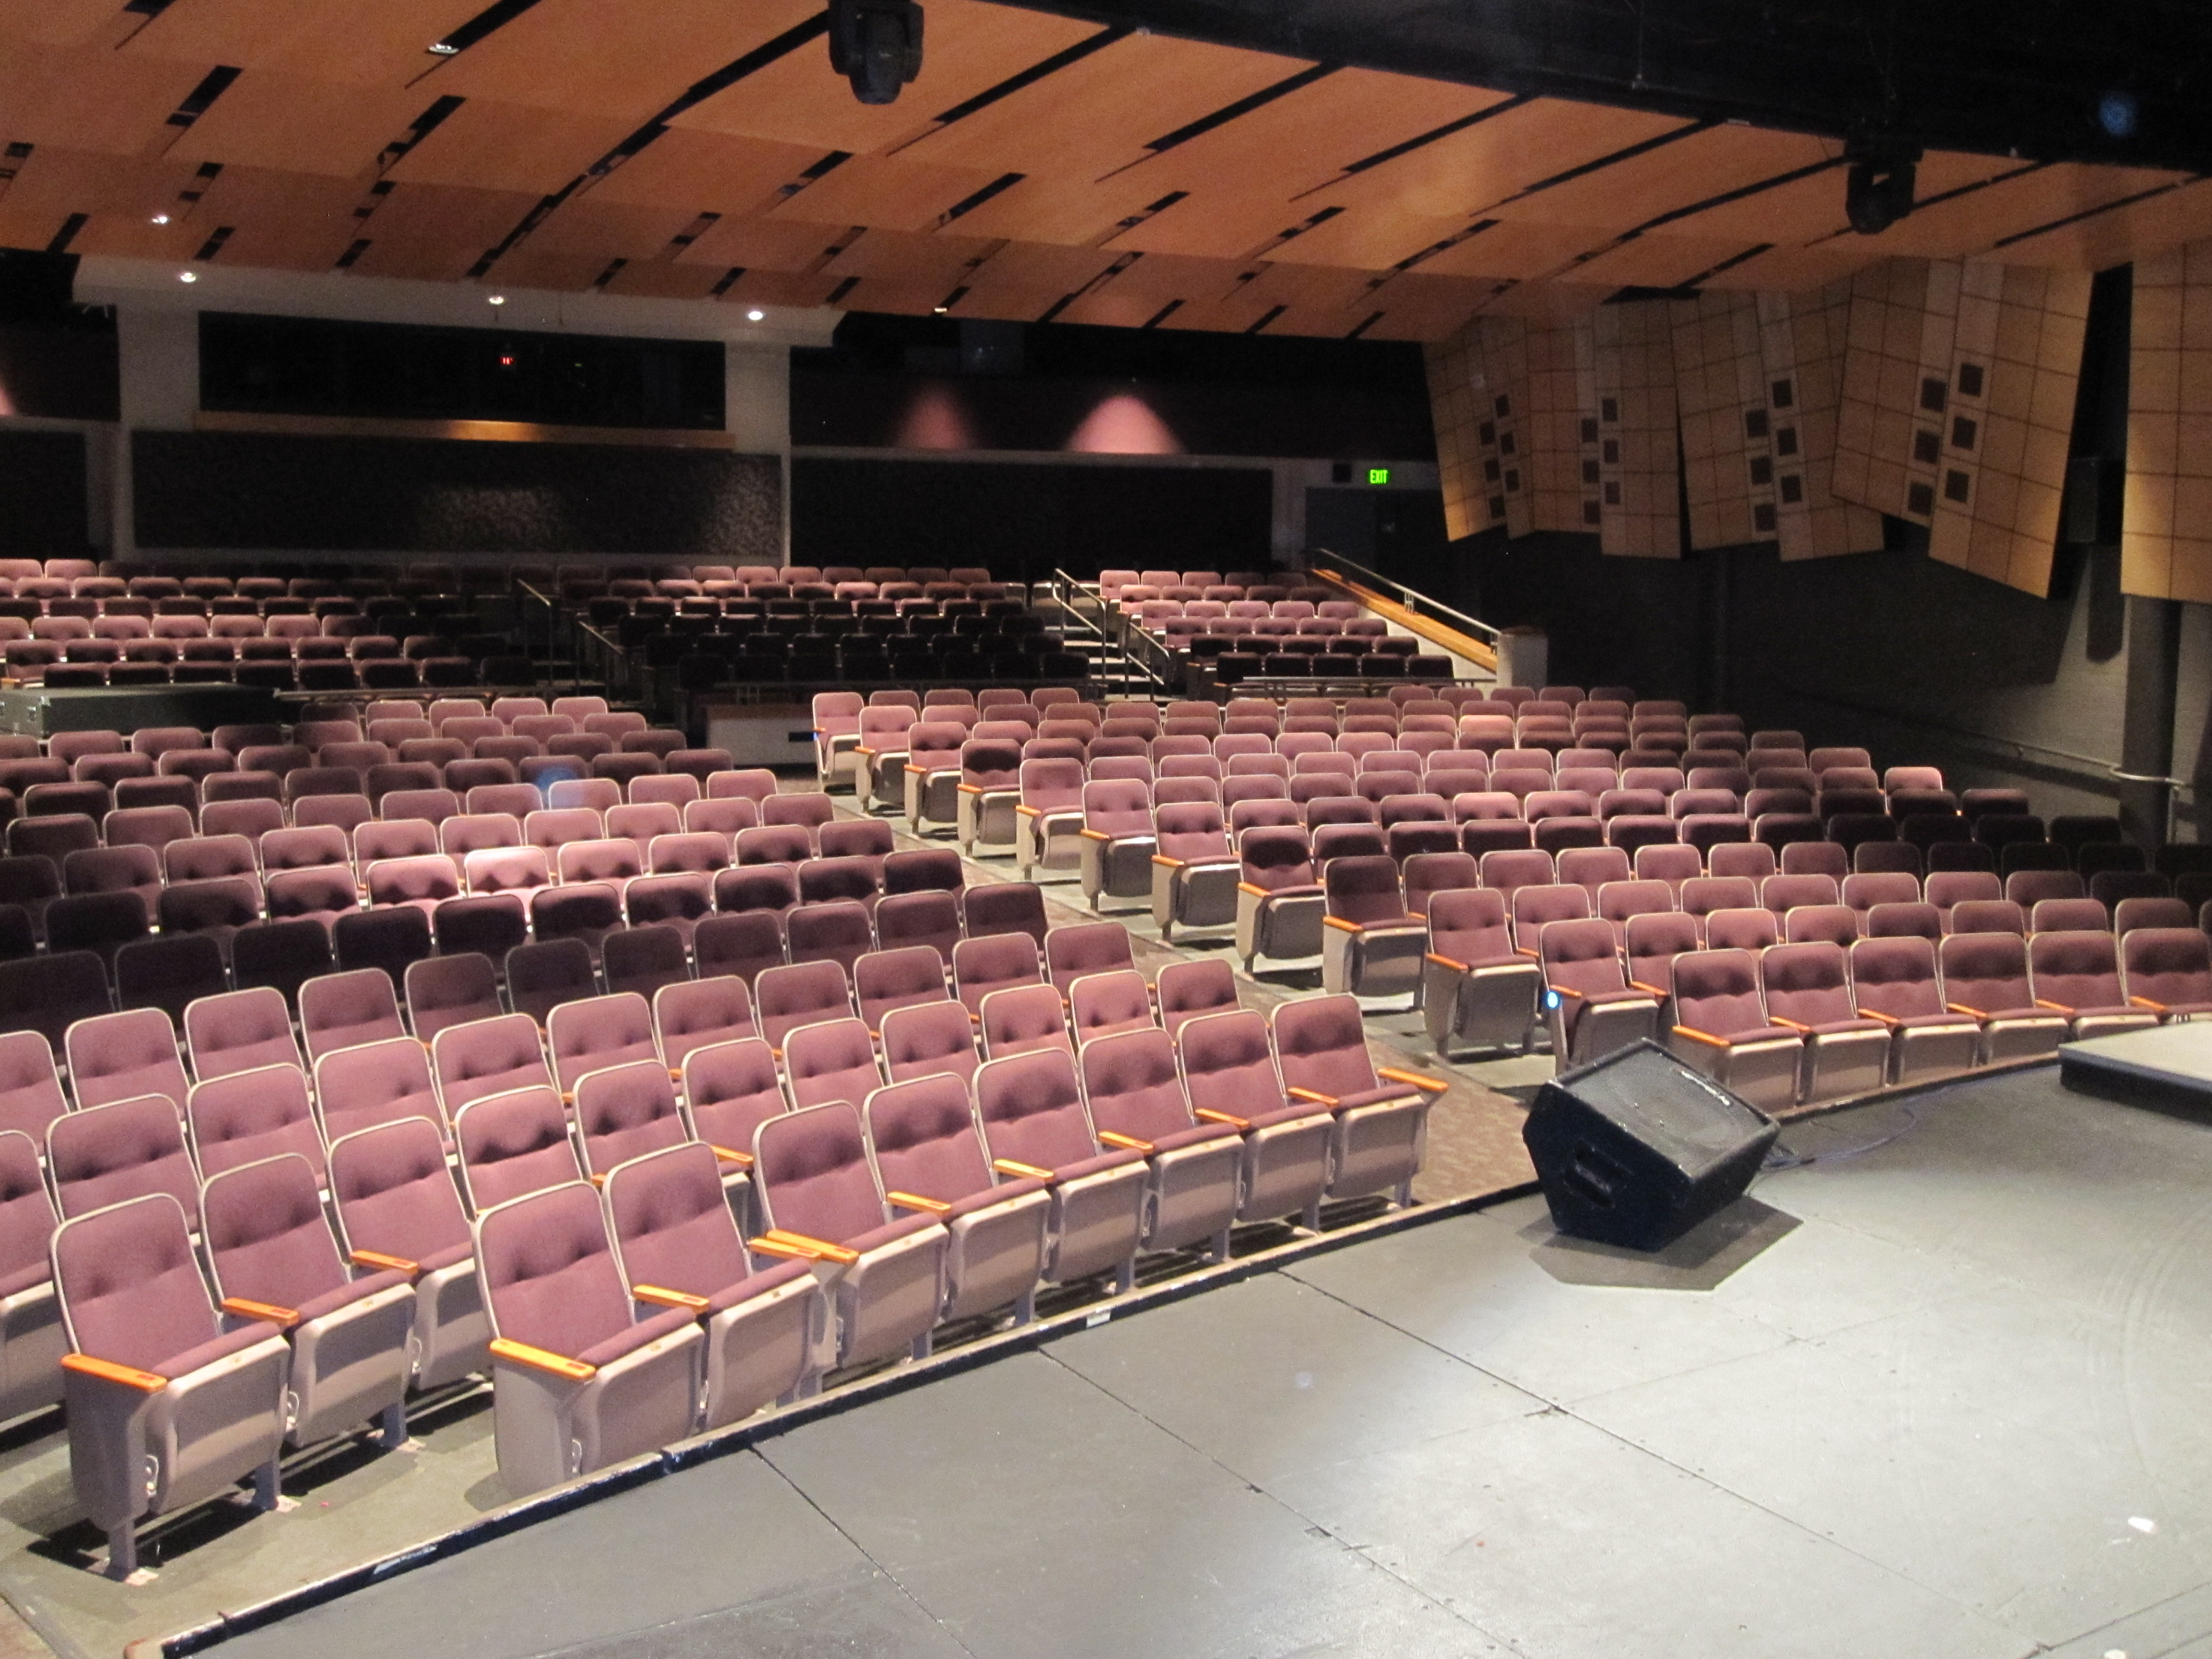 Installation and service case studies - Home theater stadium seating design ...